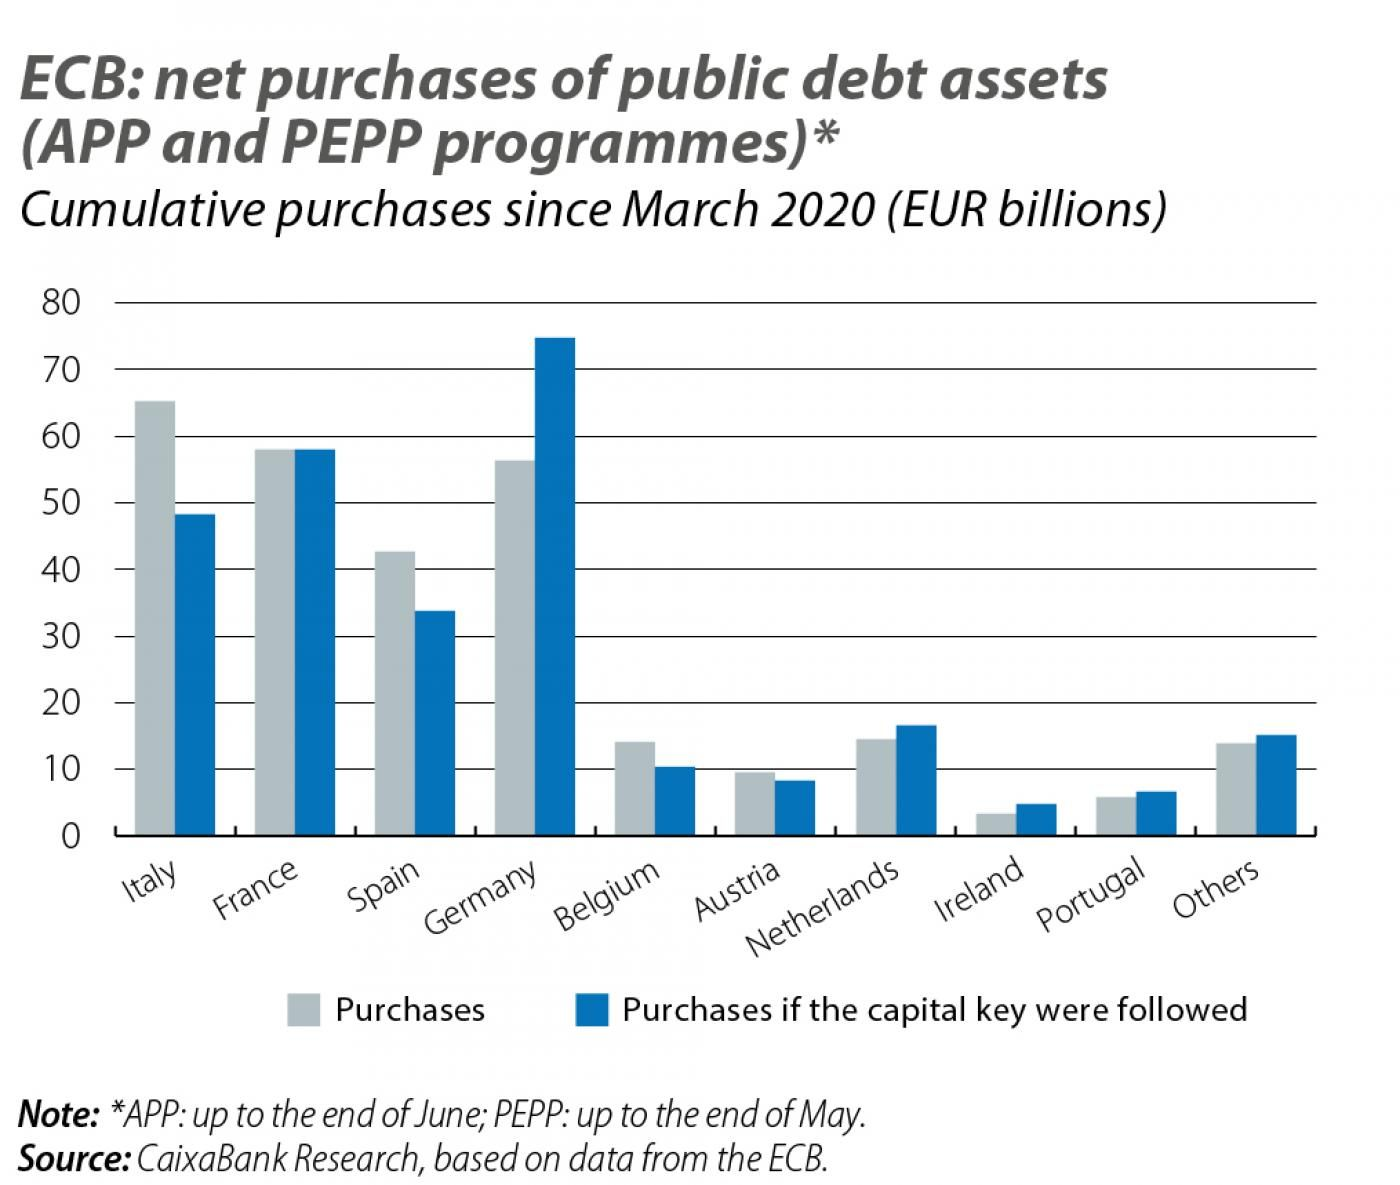 ECB: net purchases of public debt assets (APP and PEPP programmes)